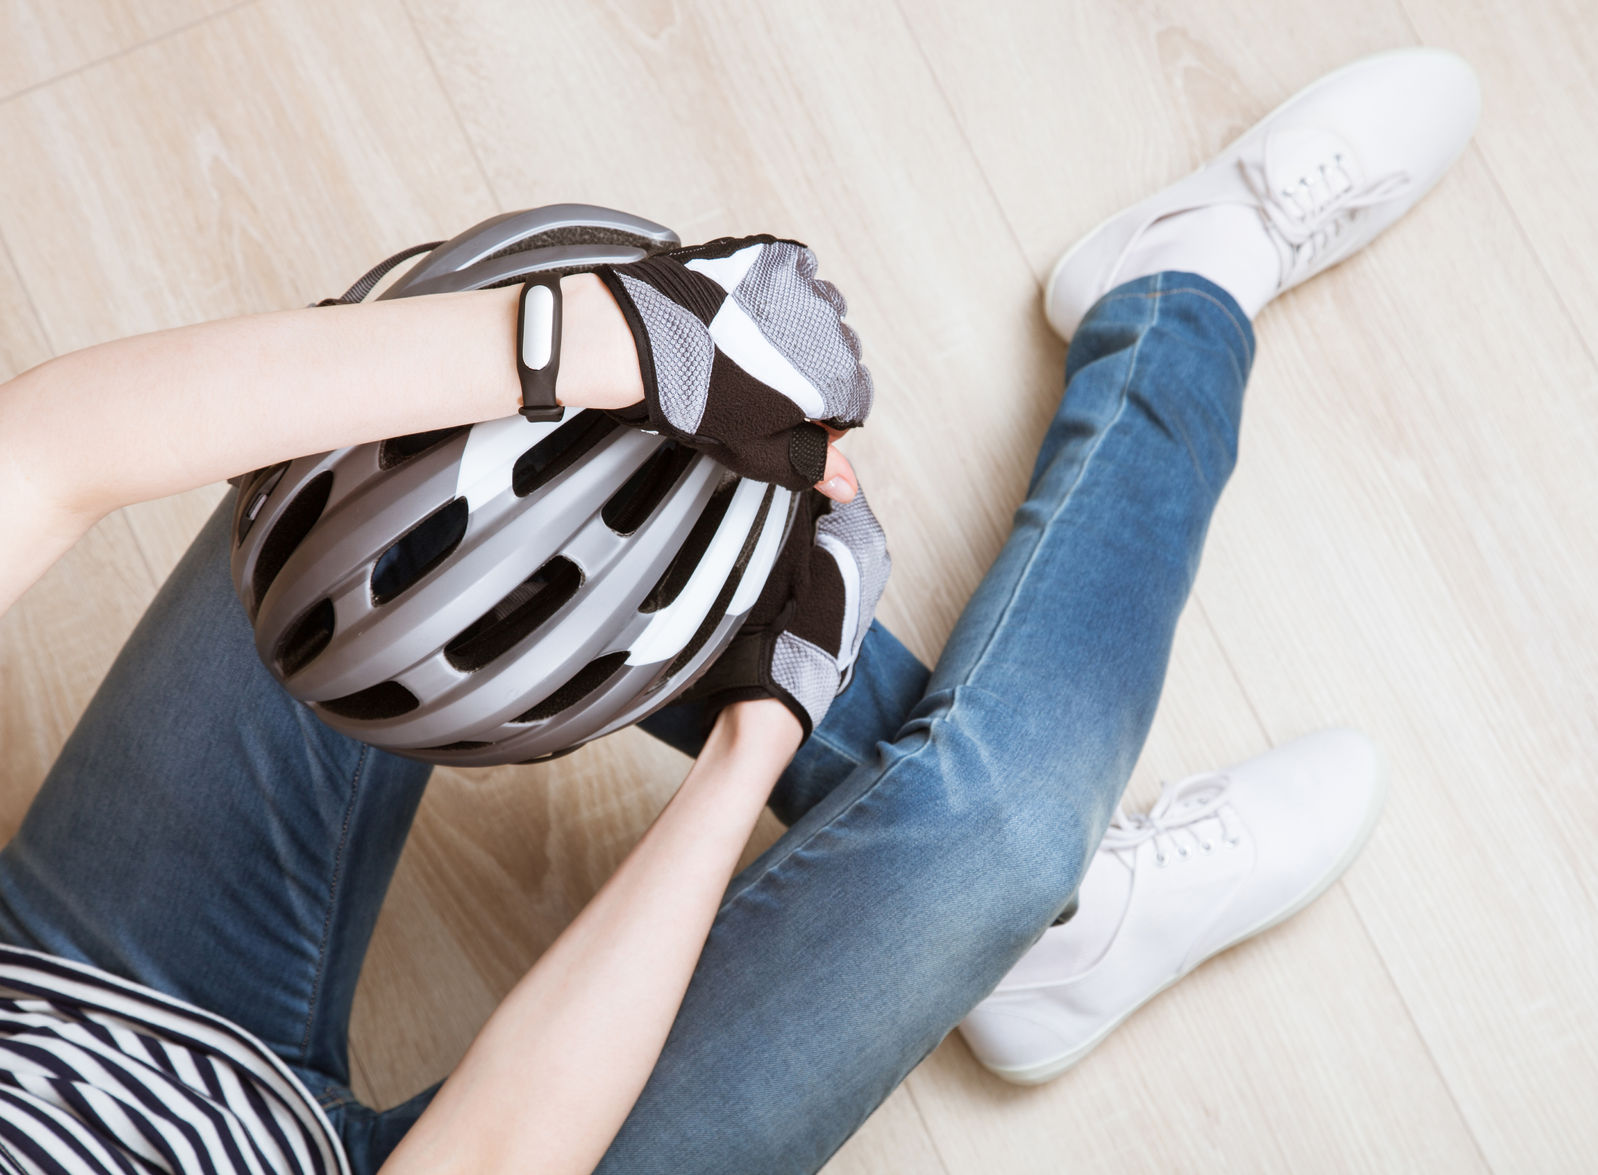 What Should I Do With My Bicycle Helmet After a Crash?